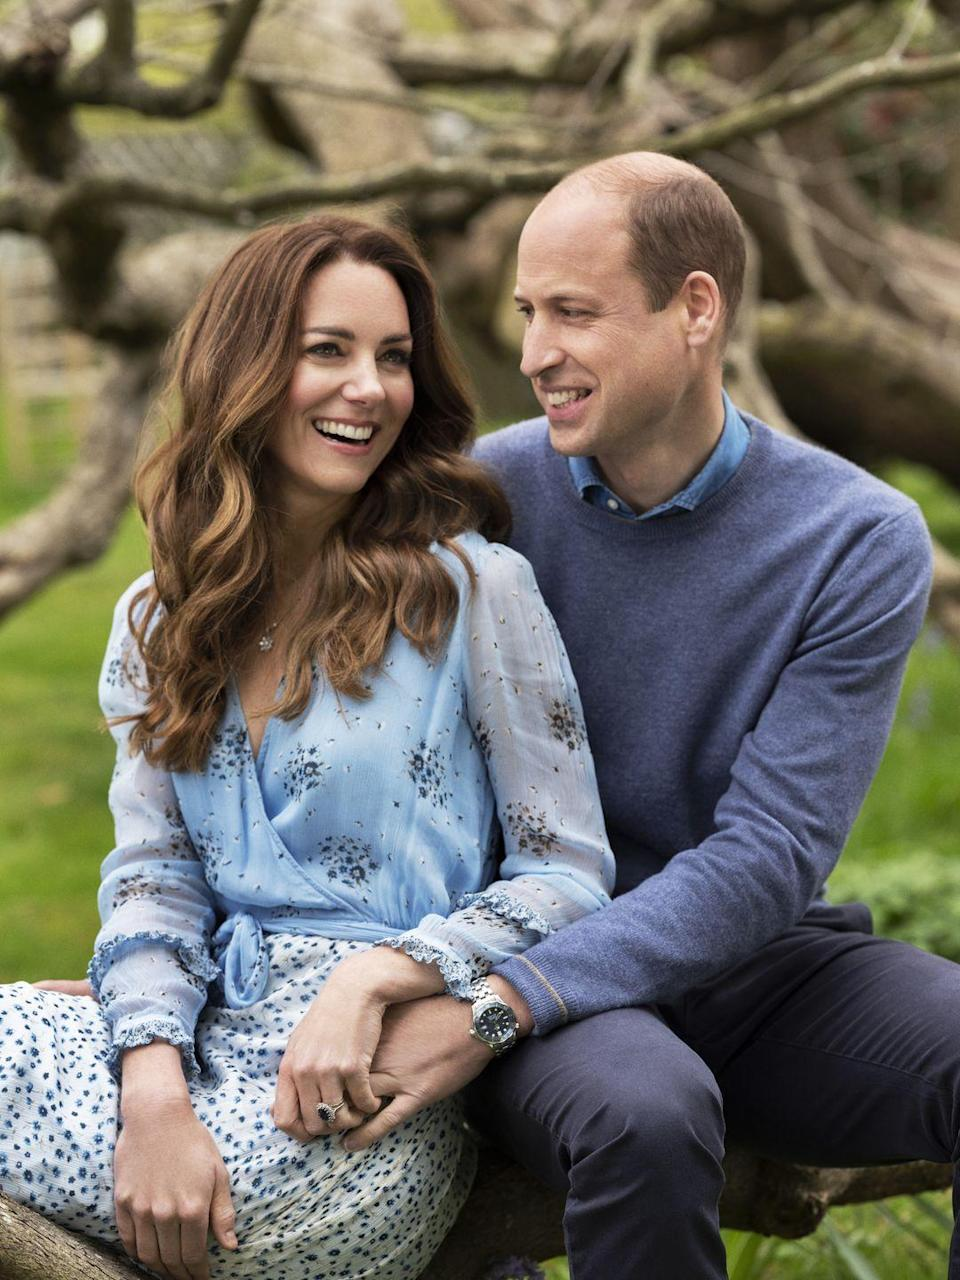 "<p><a href=""https://www.townandcountrymag.com/style/jewelry-and-watches/a13052347/kate-middleton-engagement-ring/"" rel=""nofollow noopener"" target=""_blank"" data-ylk=""slk:Kate's famous engagement ring"" class=""link rapid-noclick-resp"">Kate's famous engagement ring</a>, which originally belonged to Princess Diana, was featured prominently in the photos. </p>"